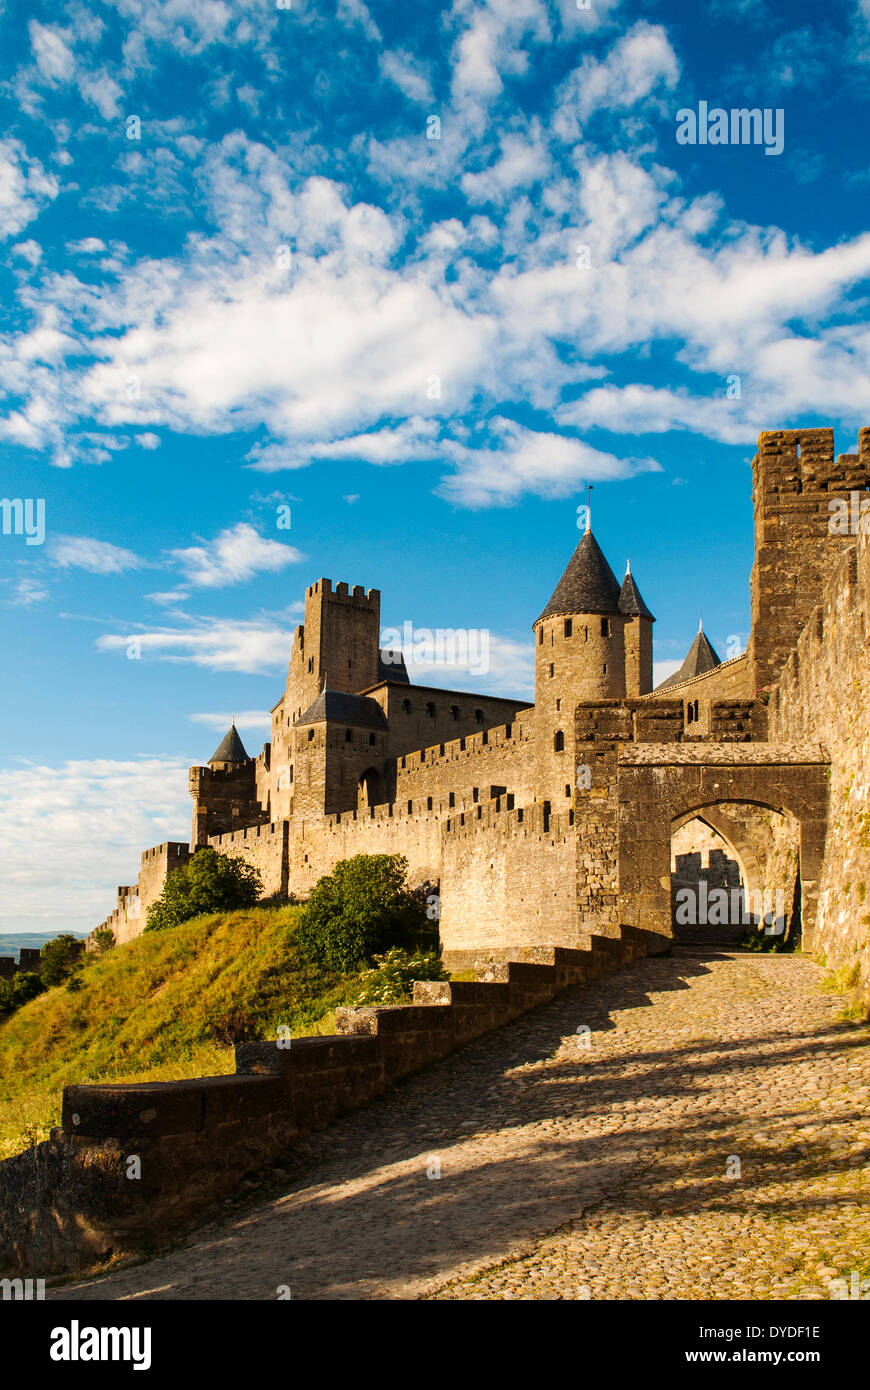 The fortified city of Carcassonne. - Stock Image